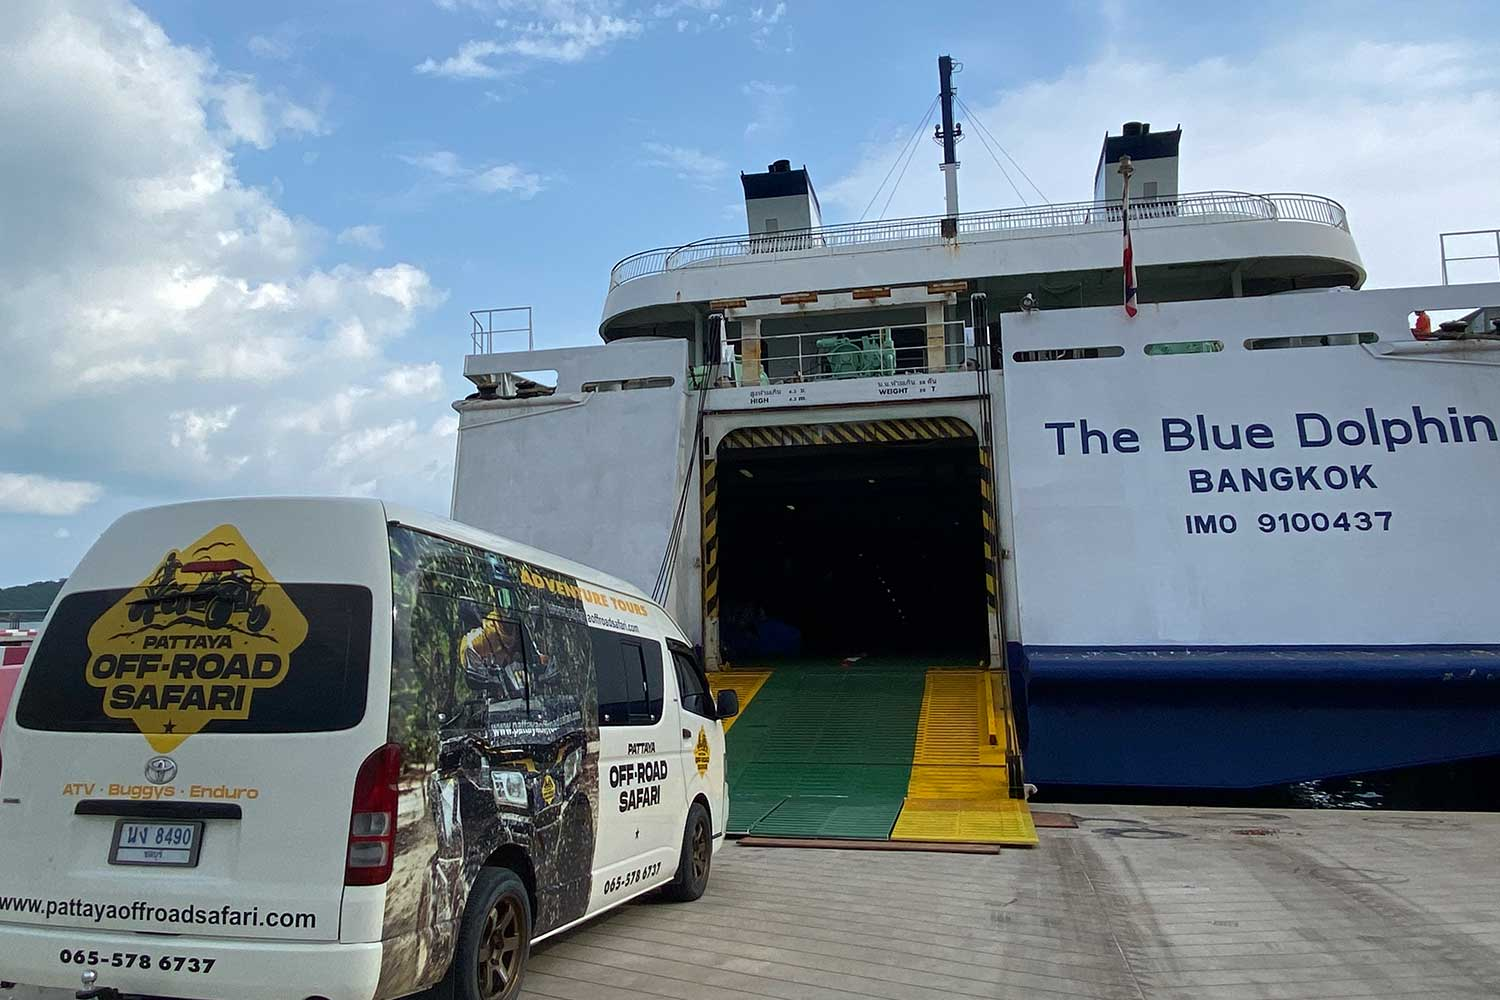 Day 1 - Route 66 HQ to Sattahip (SeaHorse Ferry to Songkhla)